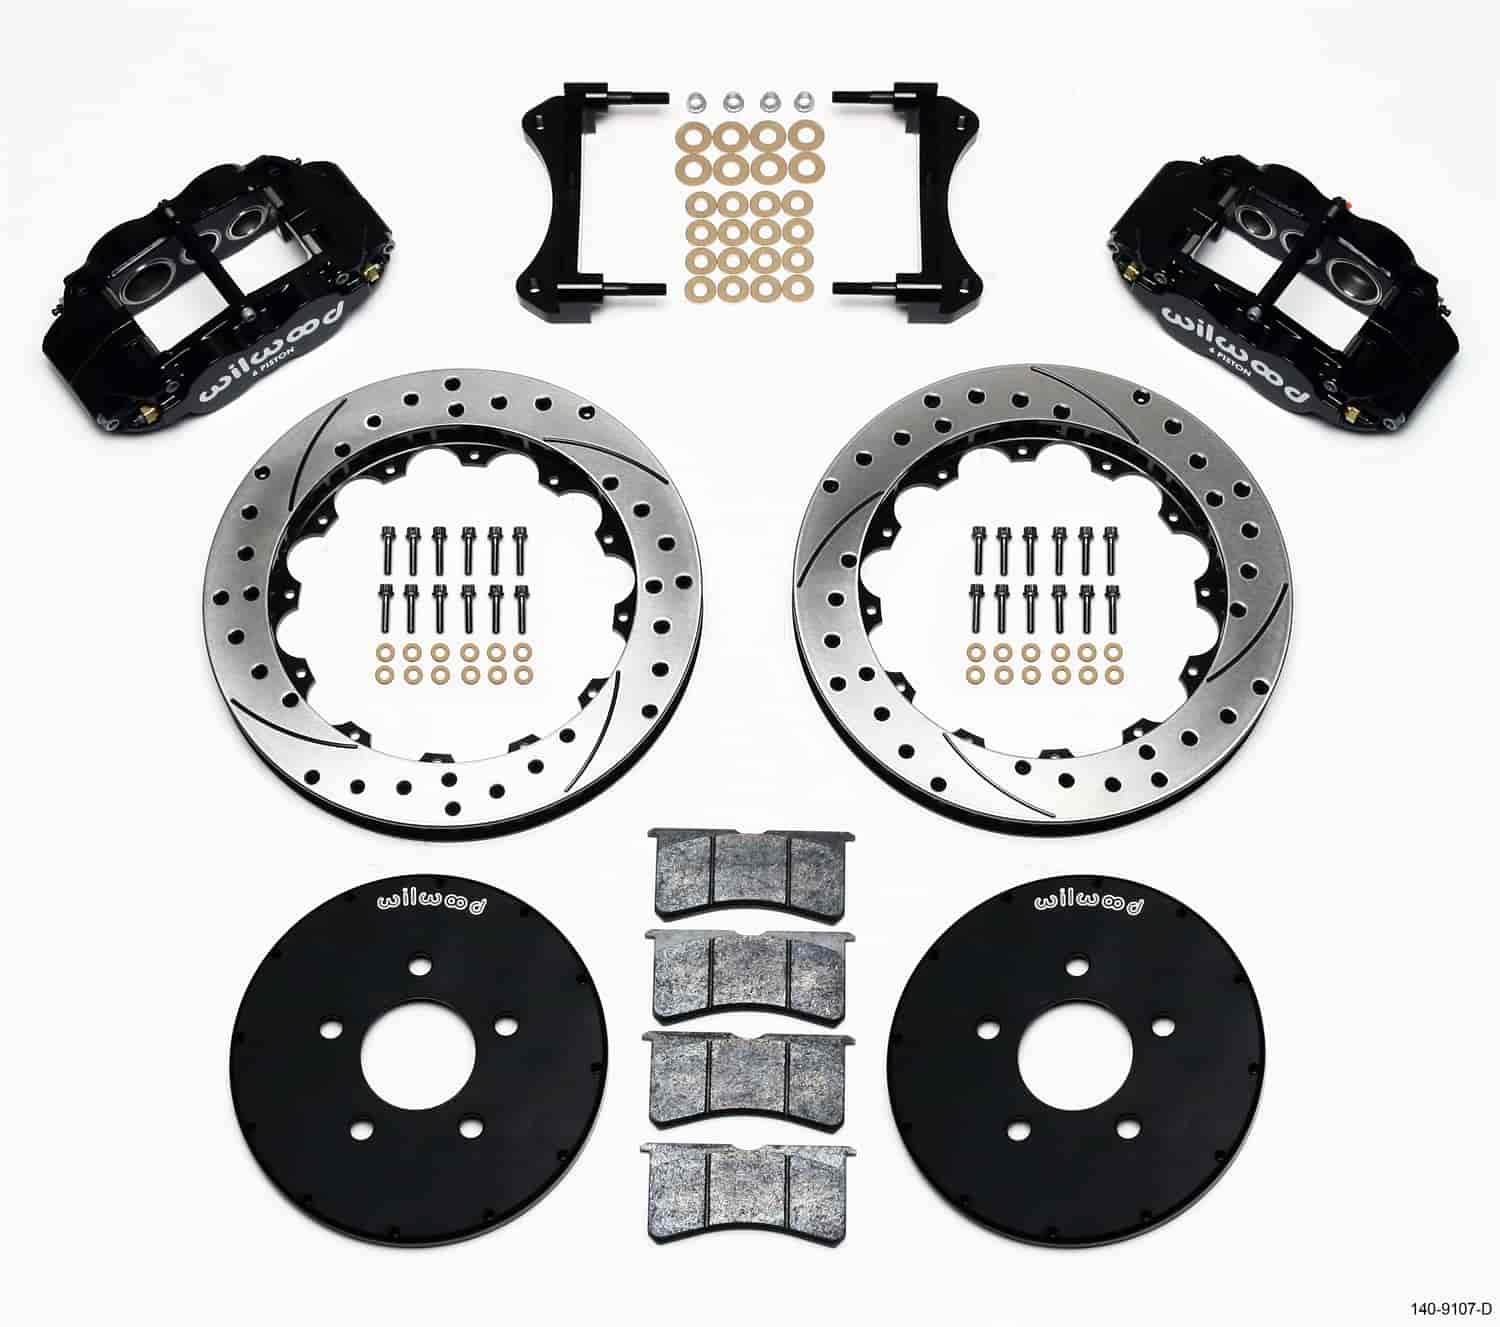 Wilwood 140-9107-D - Wilwood Superlite 6 Big Brake Front Hat Kits